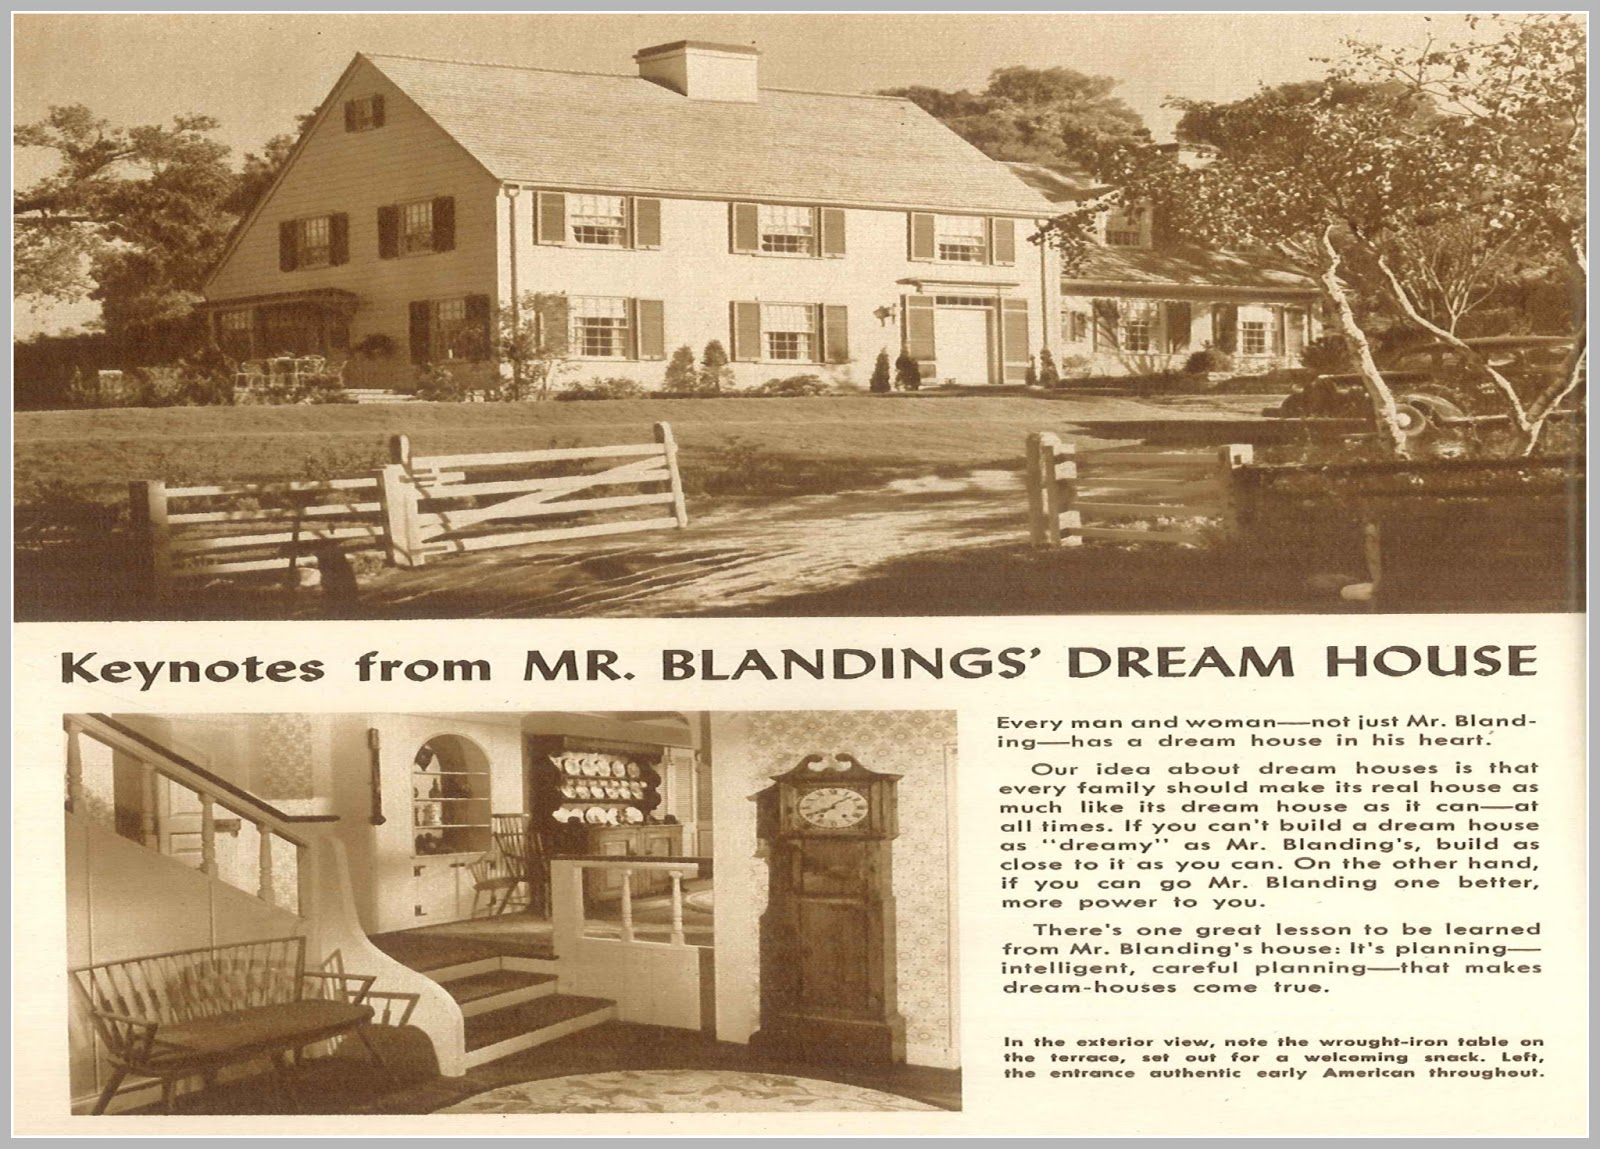 Superior A Reader Of This Website Generously Sent Me A List Of All The Blandings  Dream Homes They Have Found. It Is Very Cool To Look Up The Addresses On  Google Maps ...